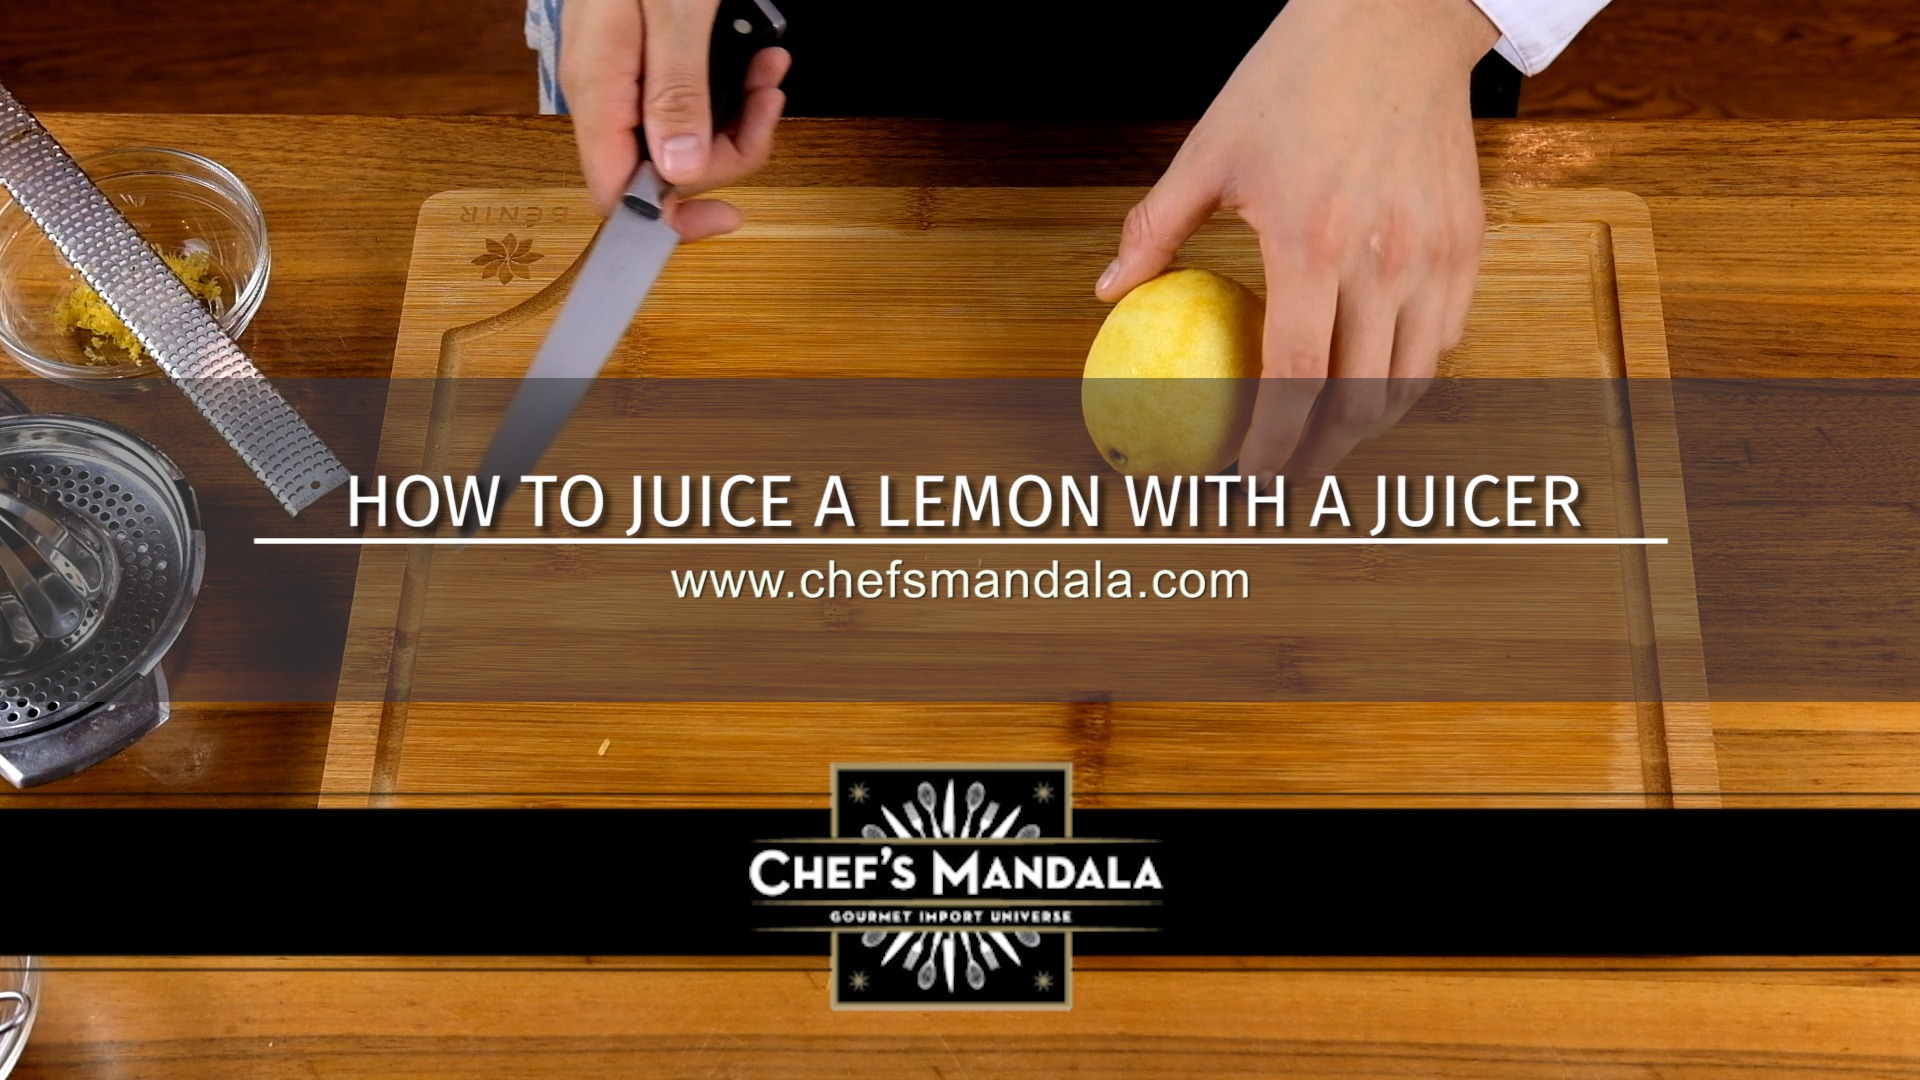 HOW TO JUICE A LEMON WITH A JUICER